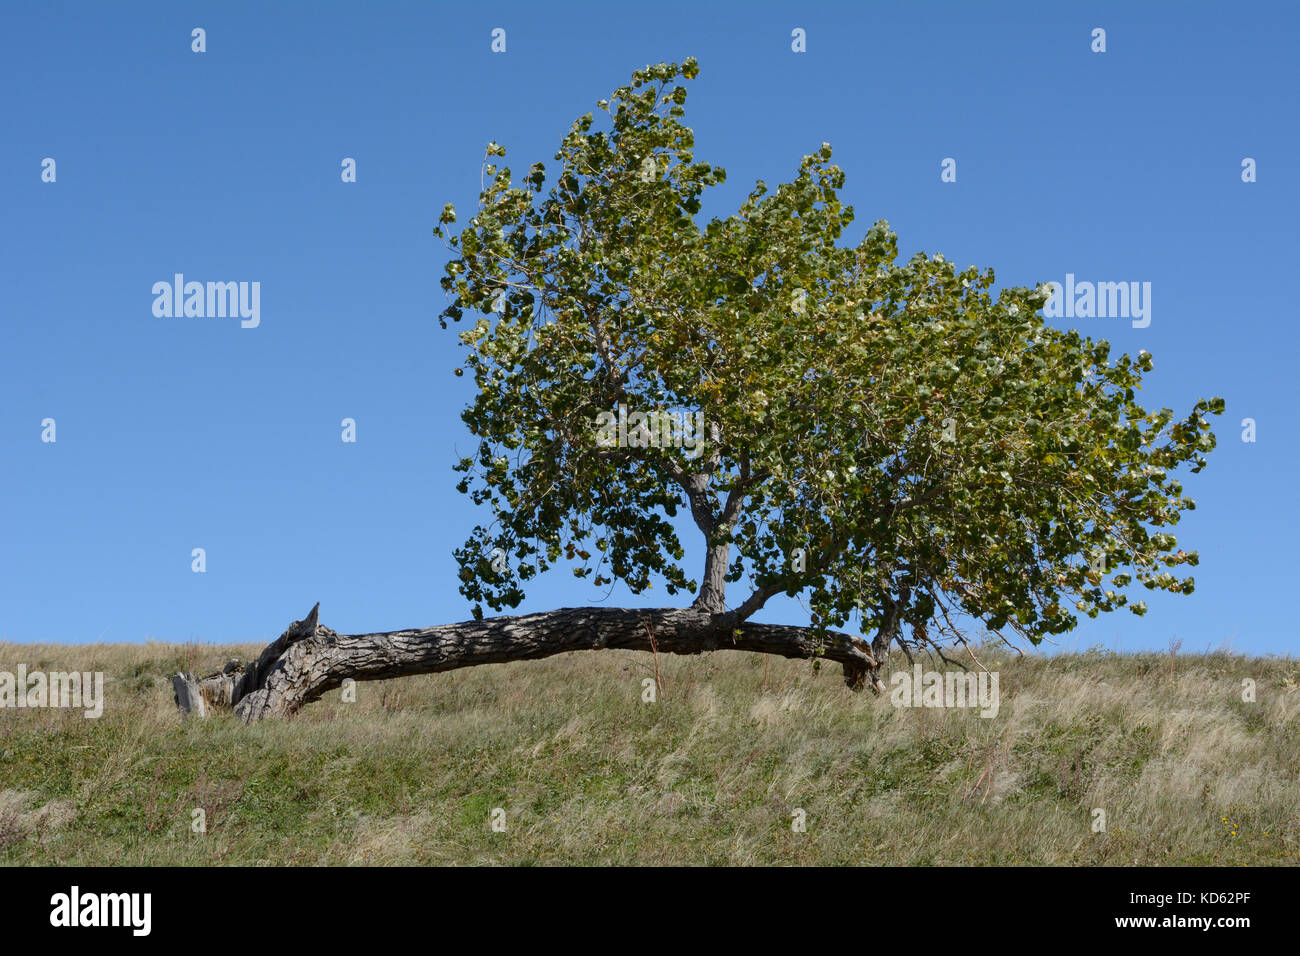 Lone damaged tree trunk on hill with branches growing upward from new trunk growing off to the side Stock Photo